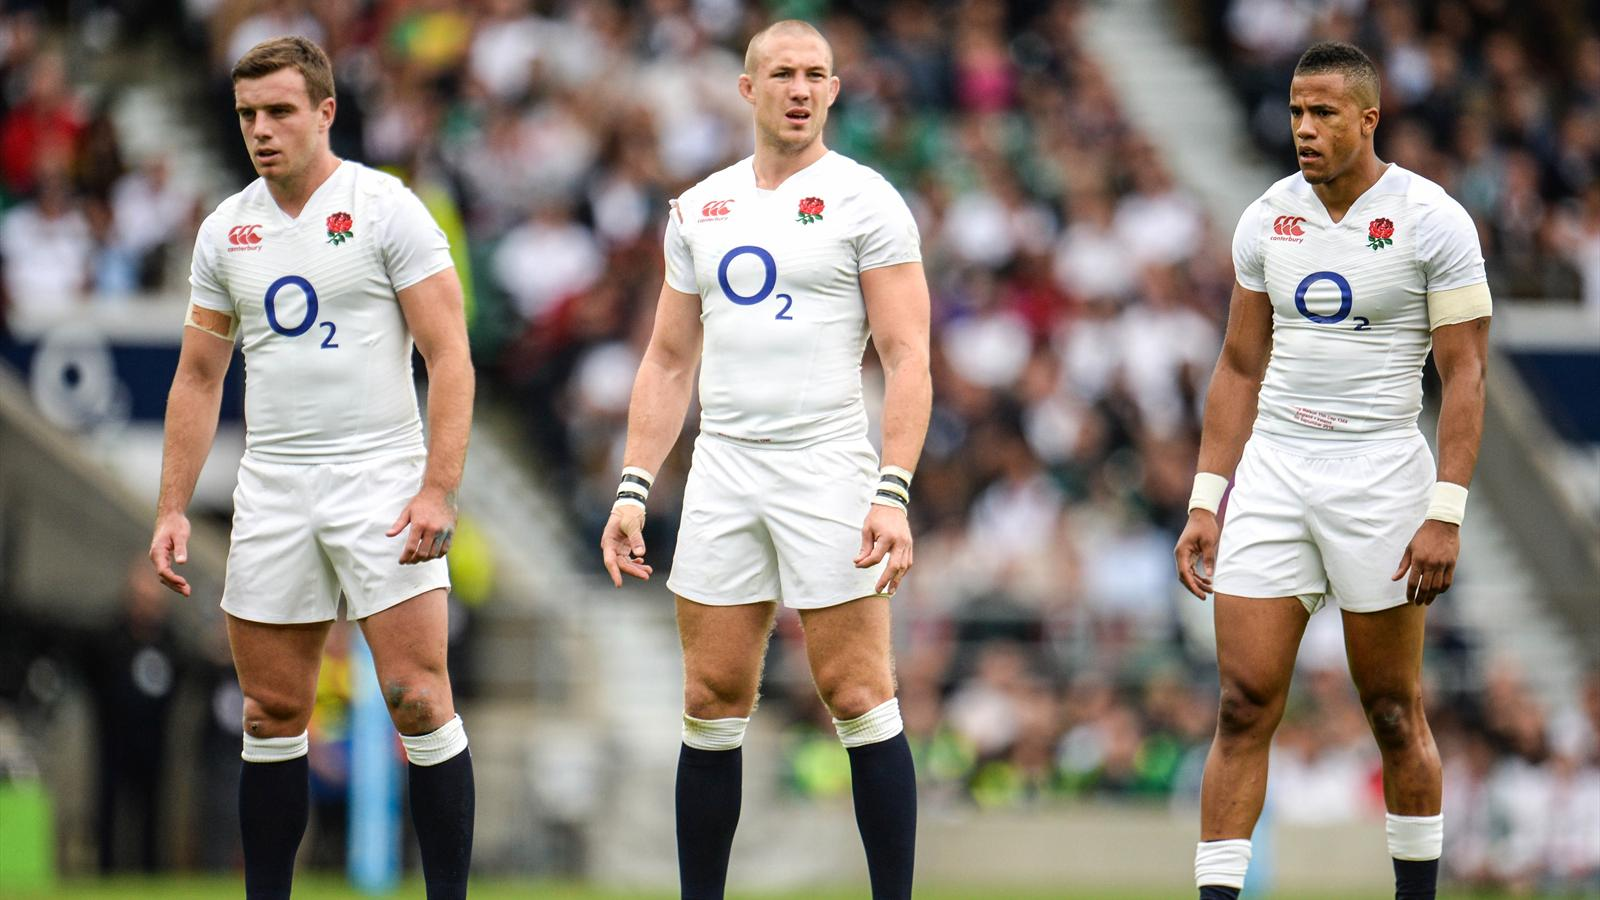 George Ford, Mike Brown et Anthony Watson - Angleterre, septembre 2015